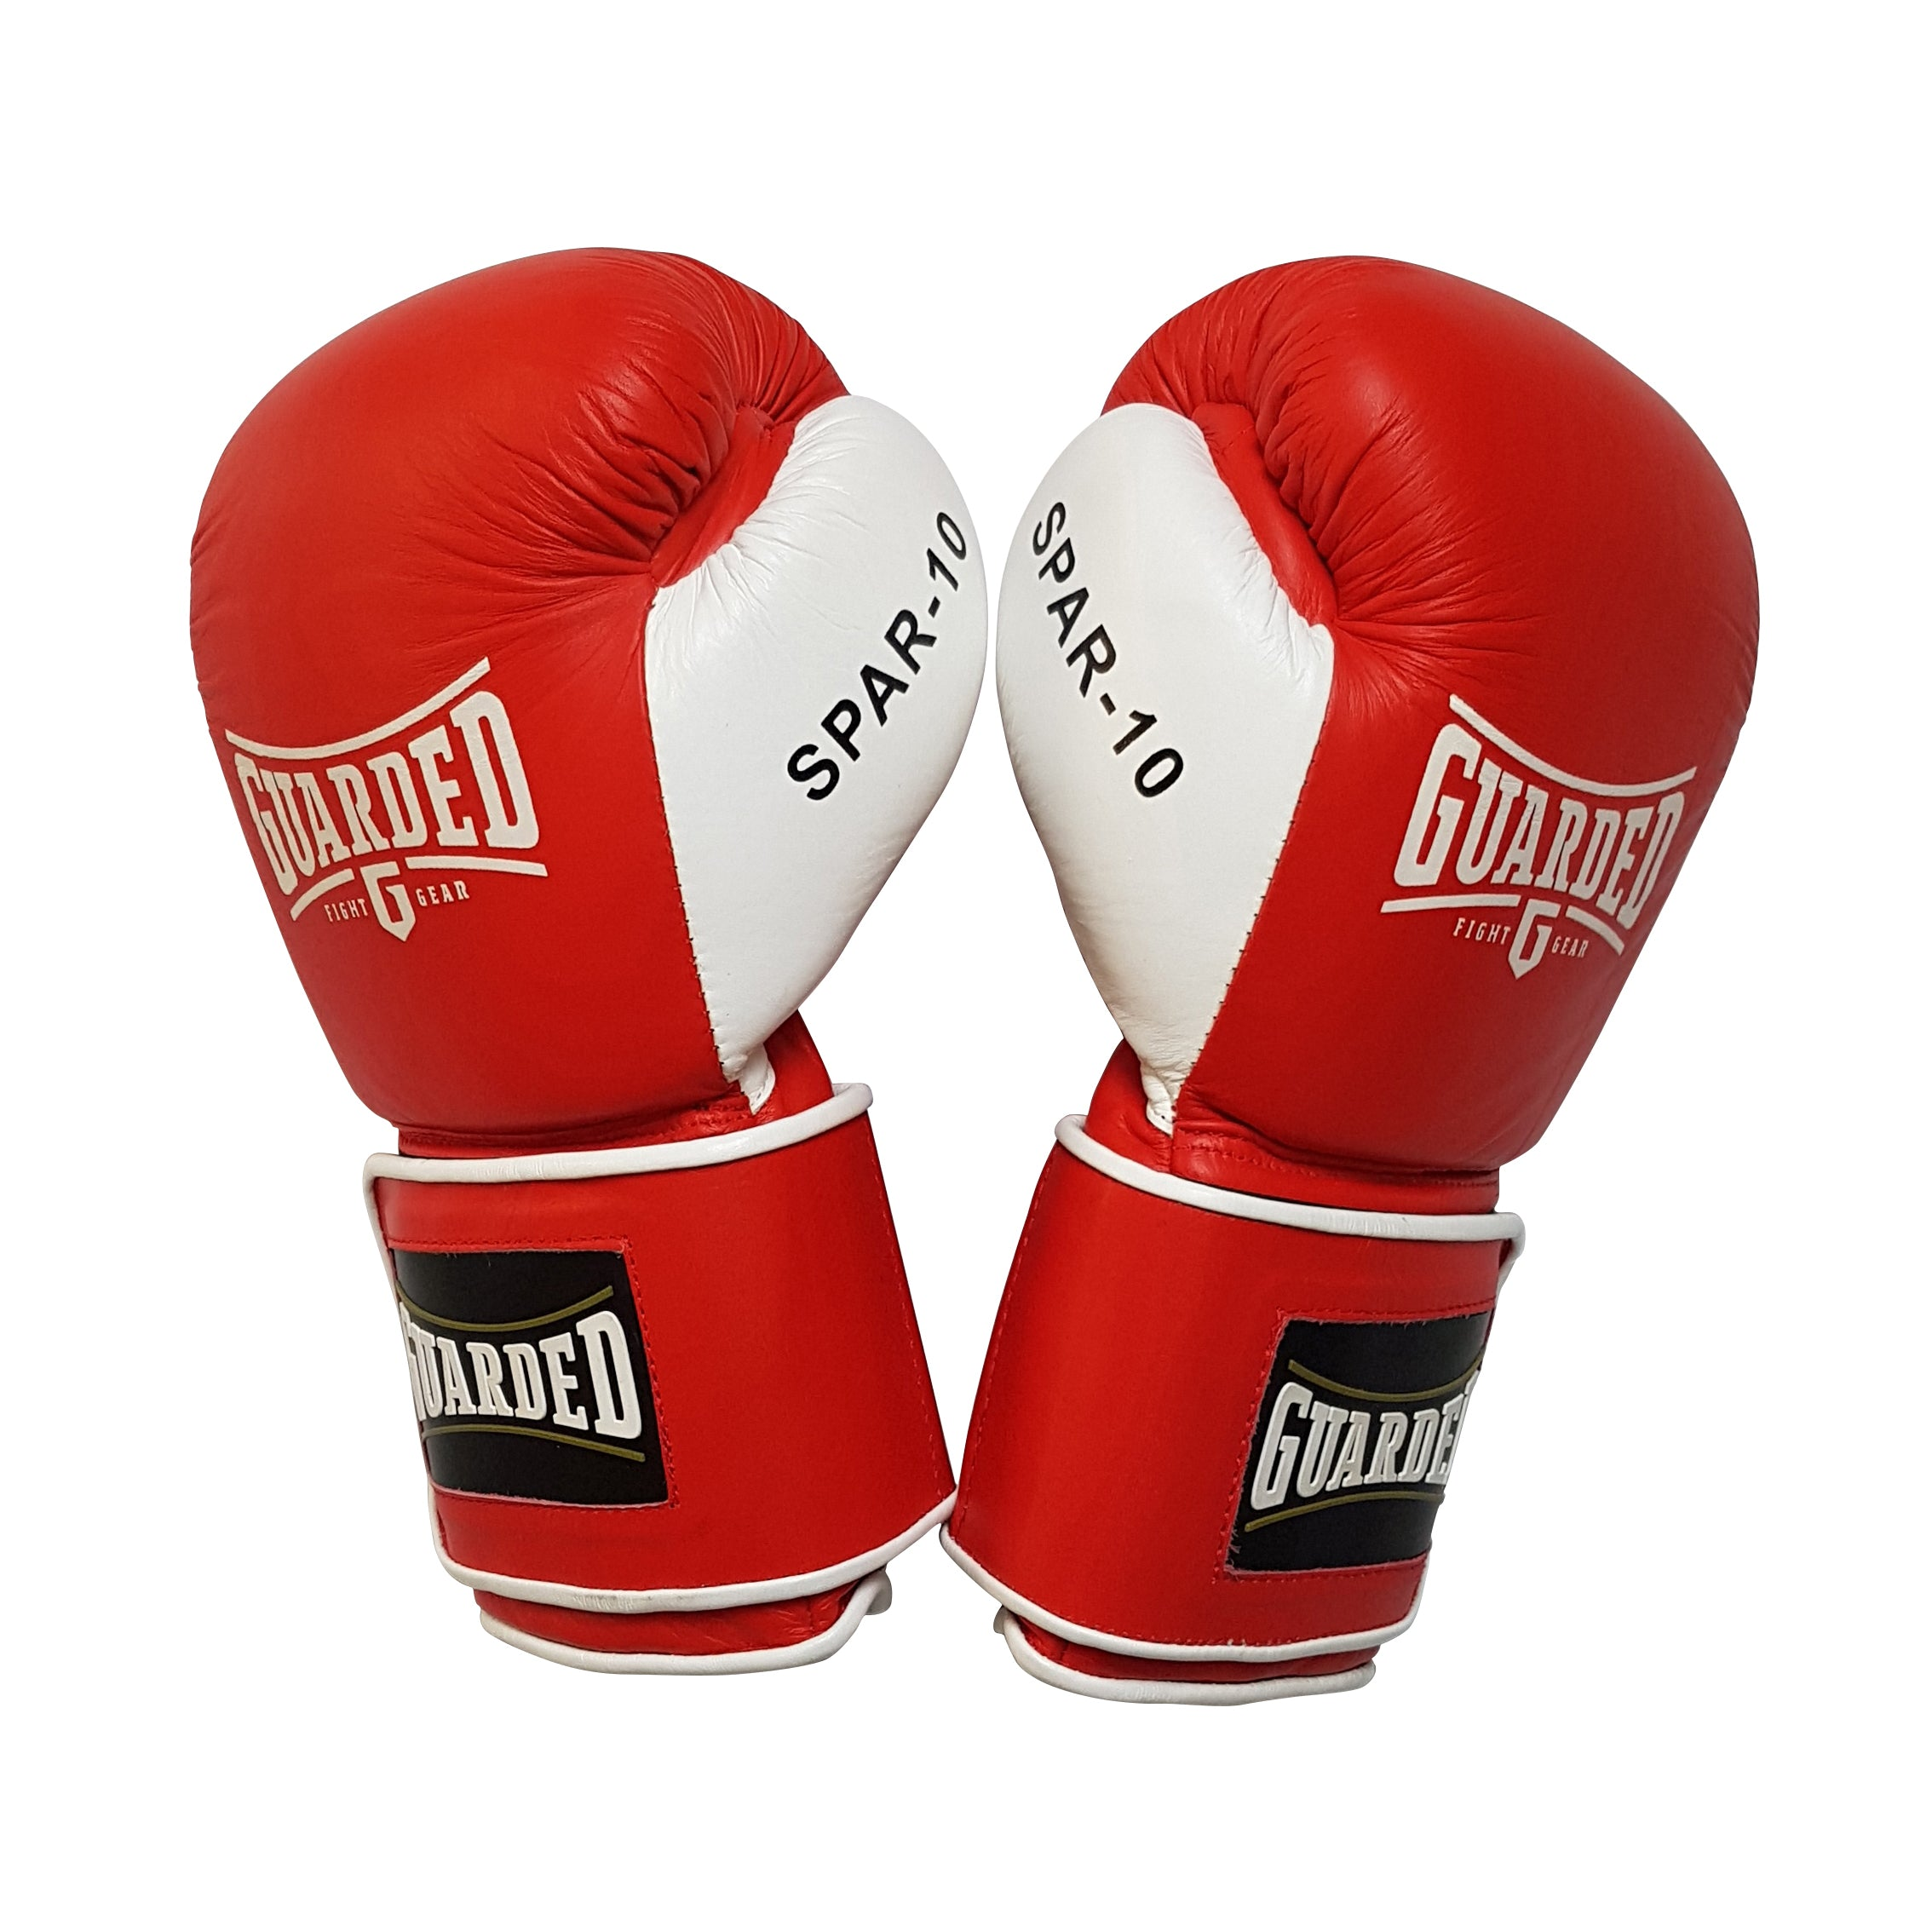 Sparring Gloves, Red, 16 oz, SPAR-10 by Guarded Fight Gear